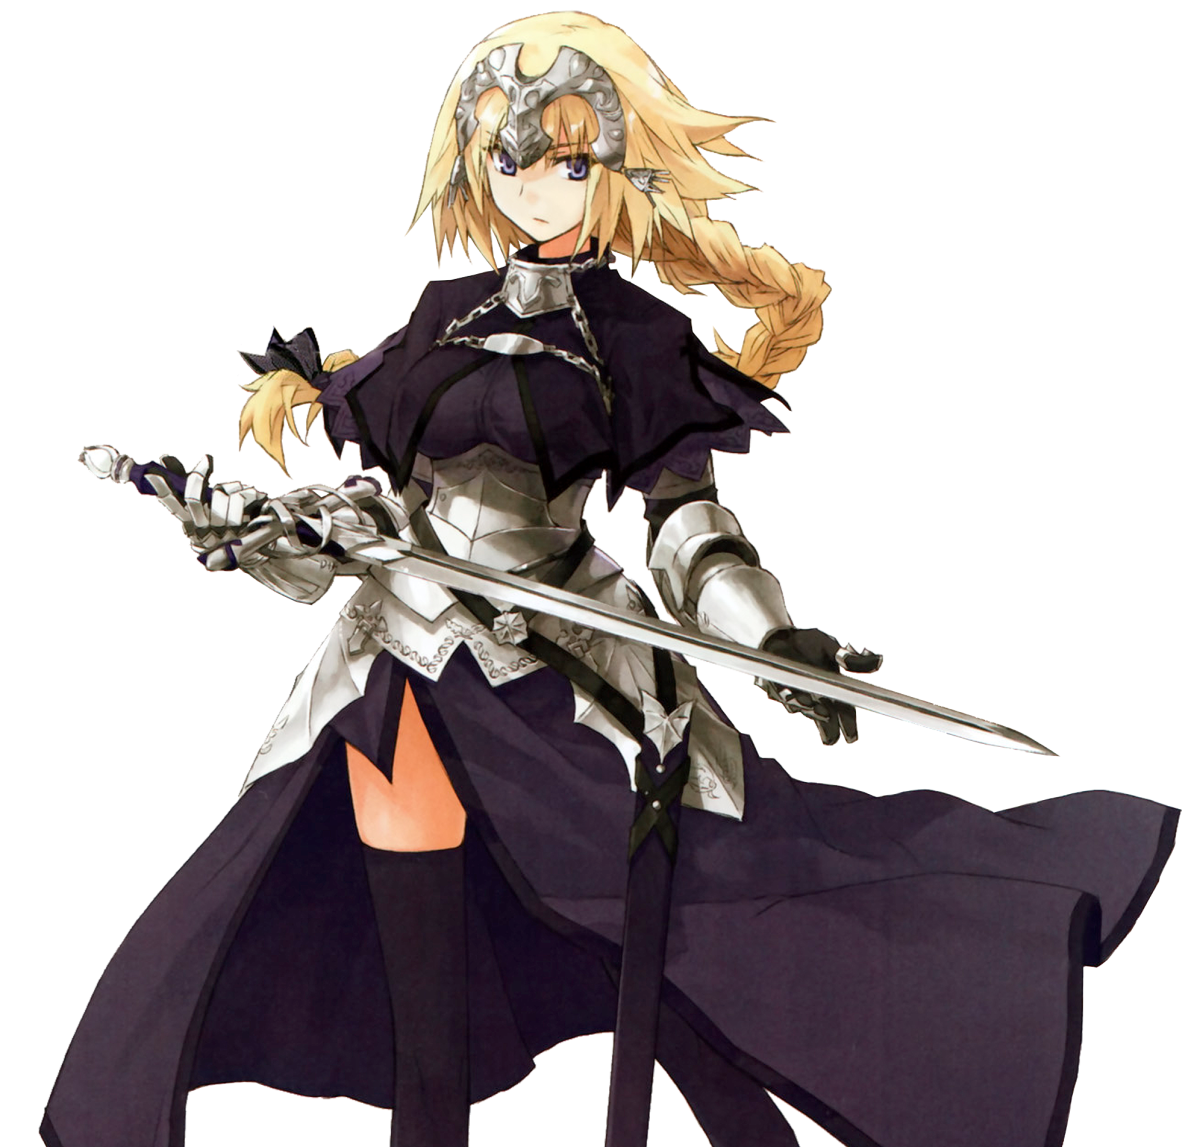 Jeanne D'arc as Ruler